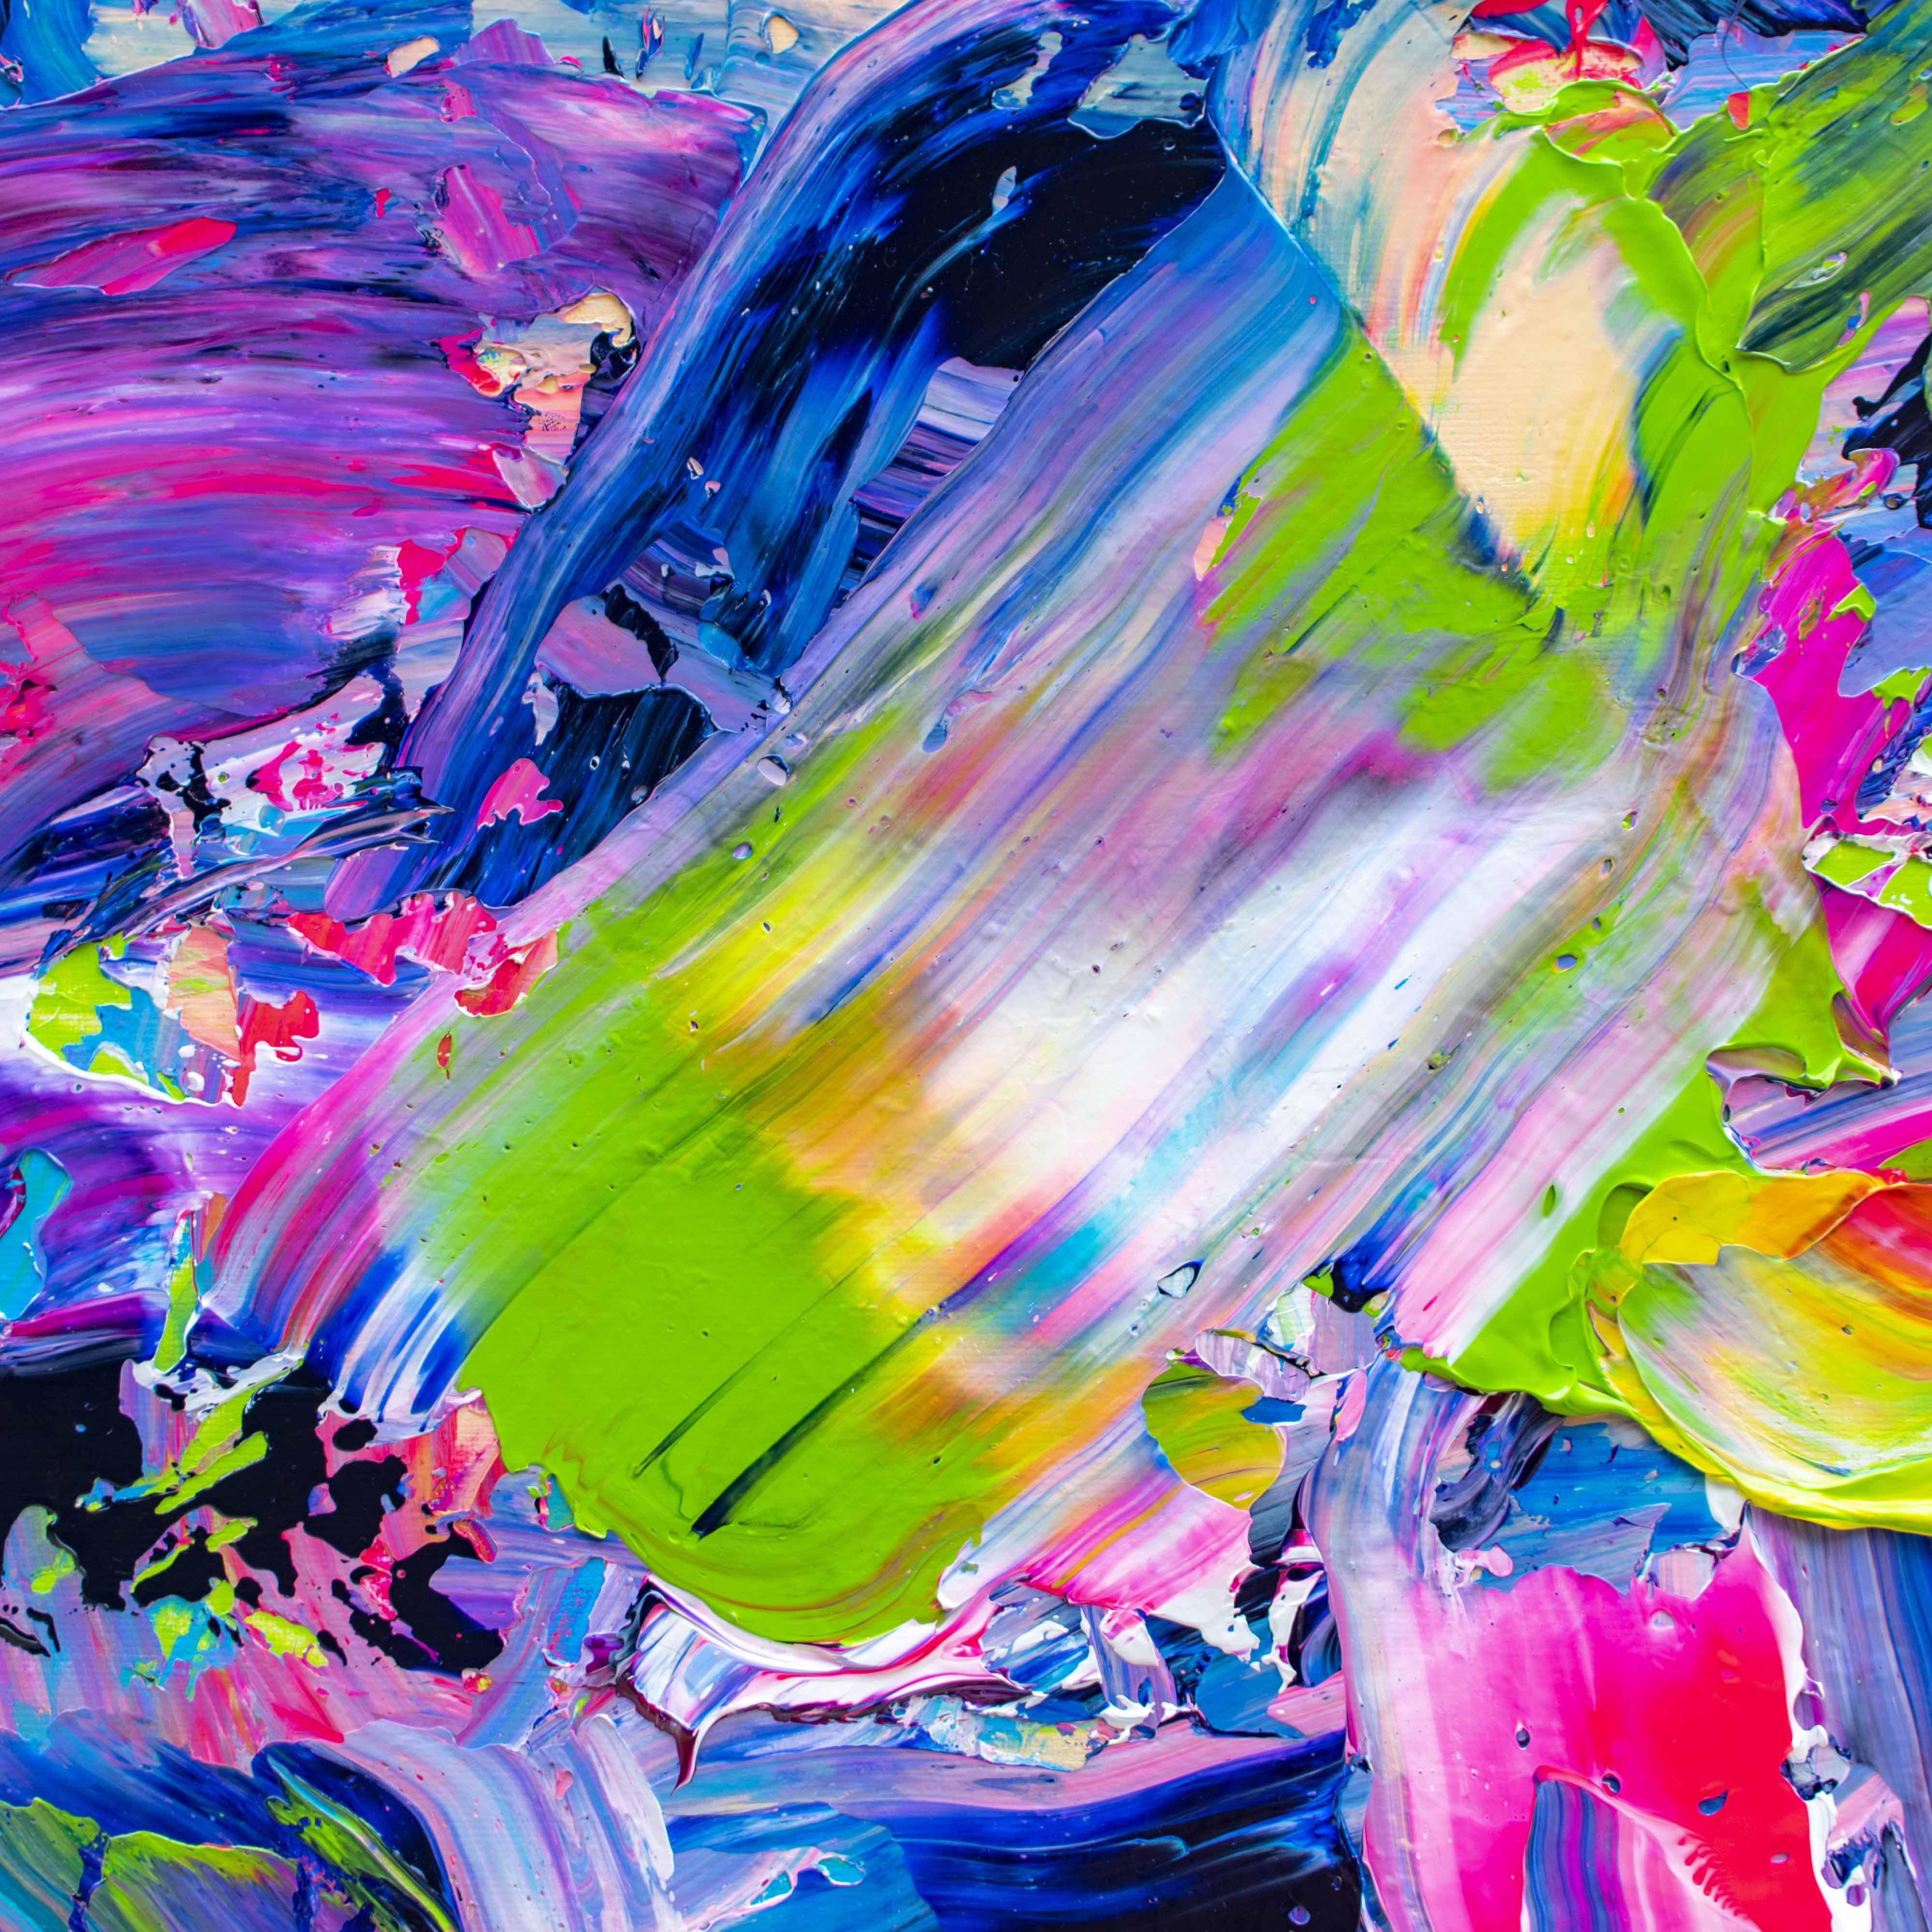 Tran Tuan Abstract Fireworks Night 2021 135 x 80 x 5 cm Acrylic on Canvas Painting Detail